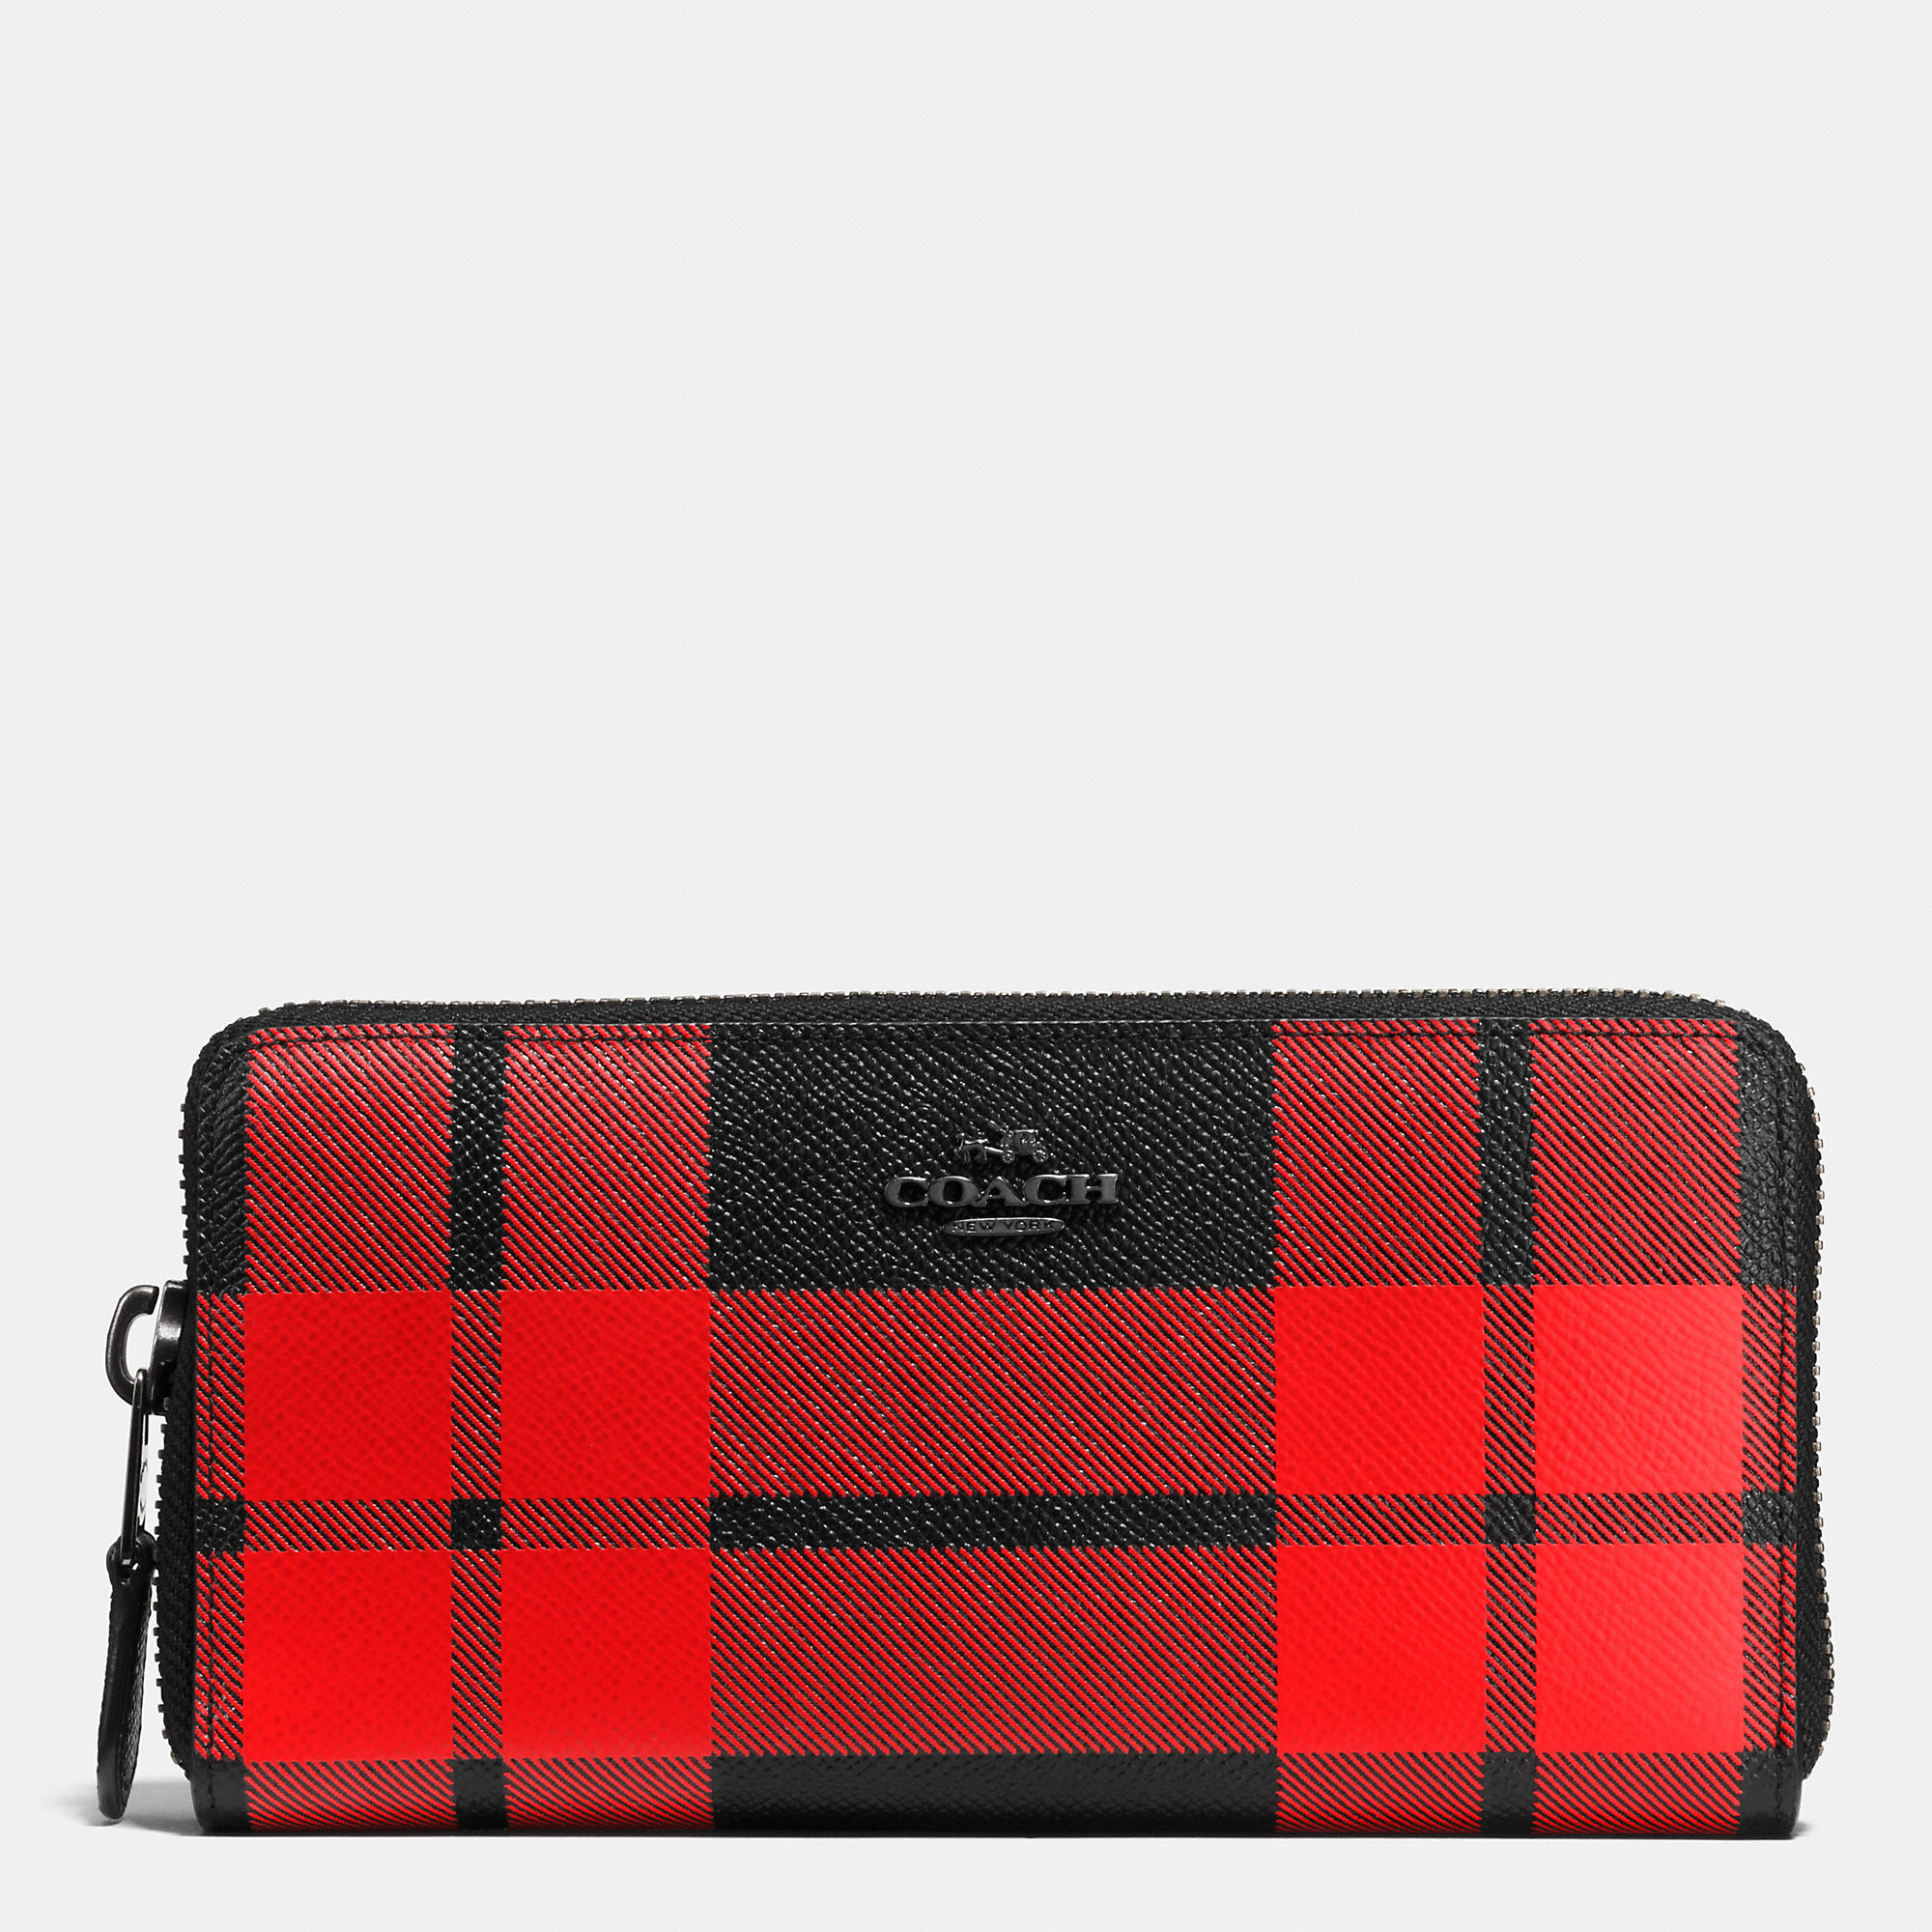 Coach Mount Plaid Accordion Zip Wallet In Leather In Black